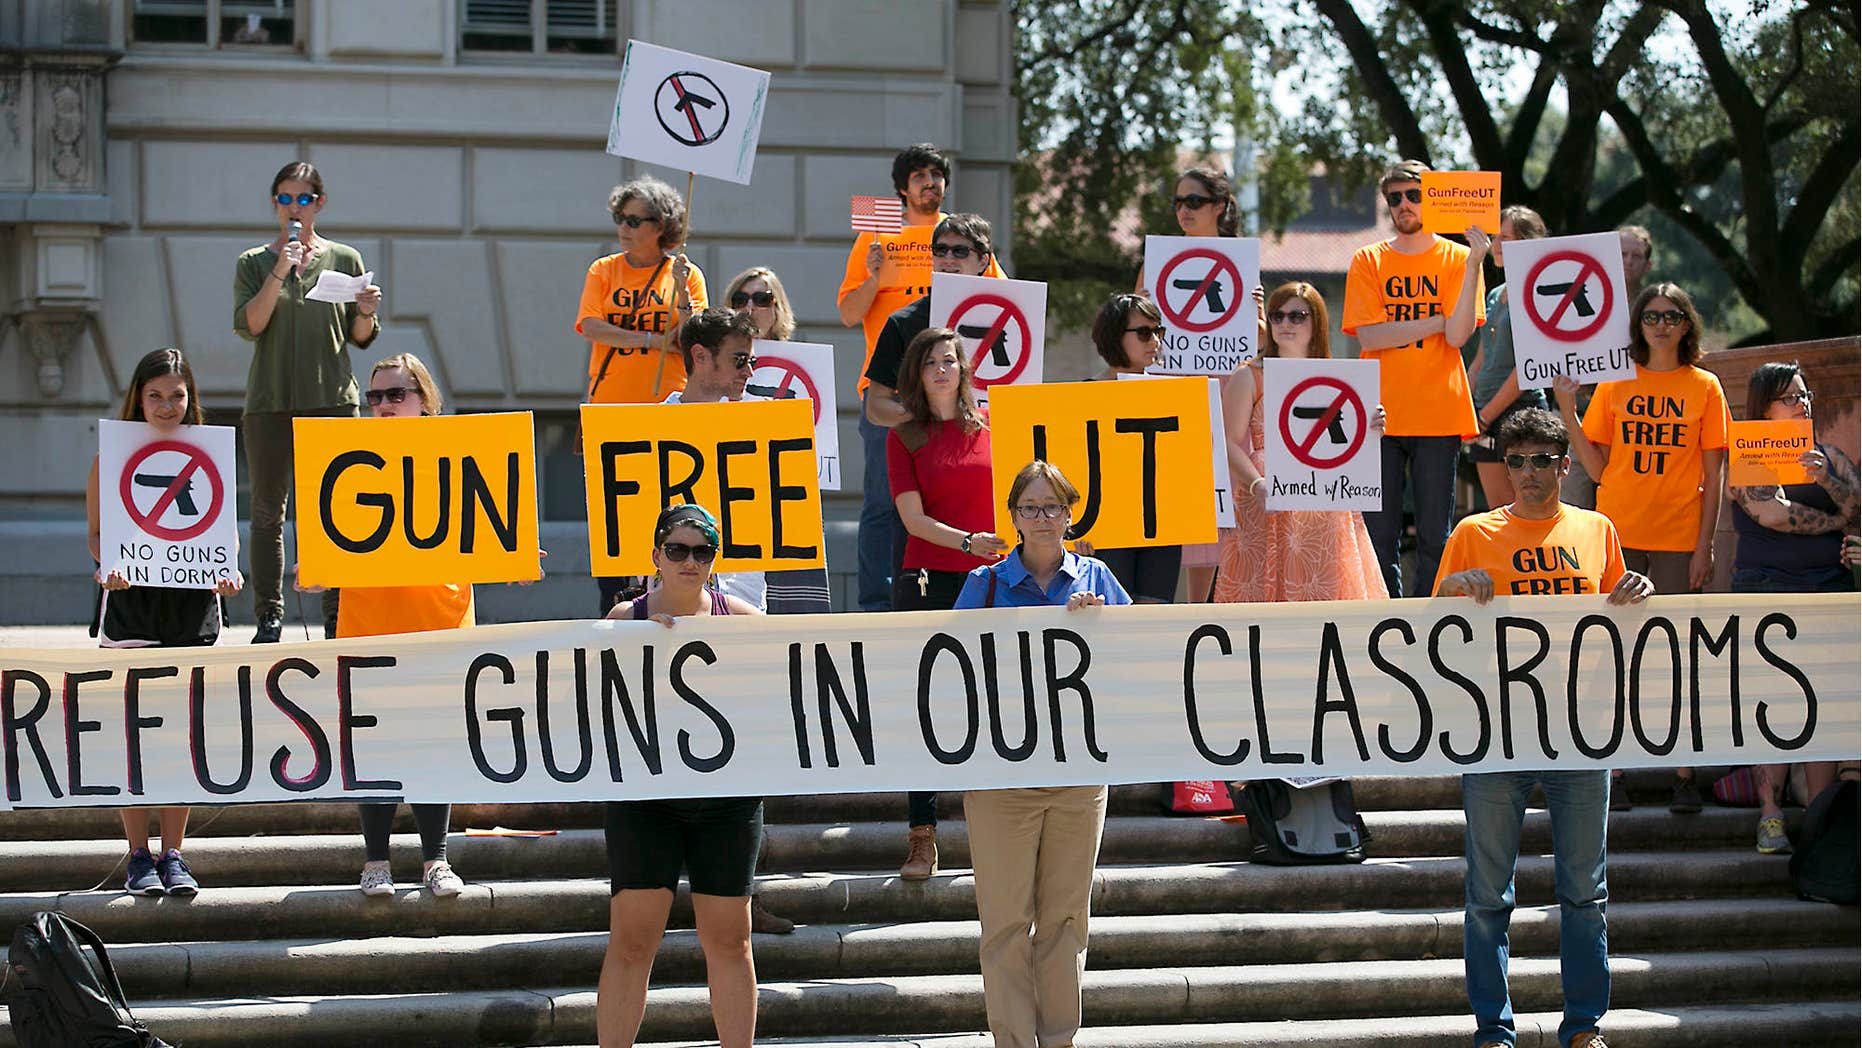 FILE - In this Oct. 1, 2015, file photo, protesters gather on the West Mall of the University of Texas campus to oppose a new state law that expands the rights of concealed handgun license holders to carry their weapons on public college campuses.